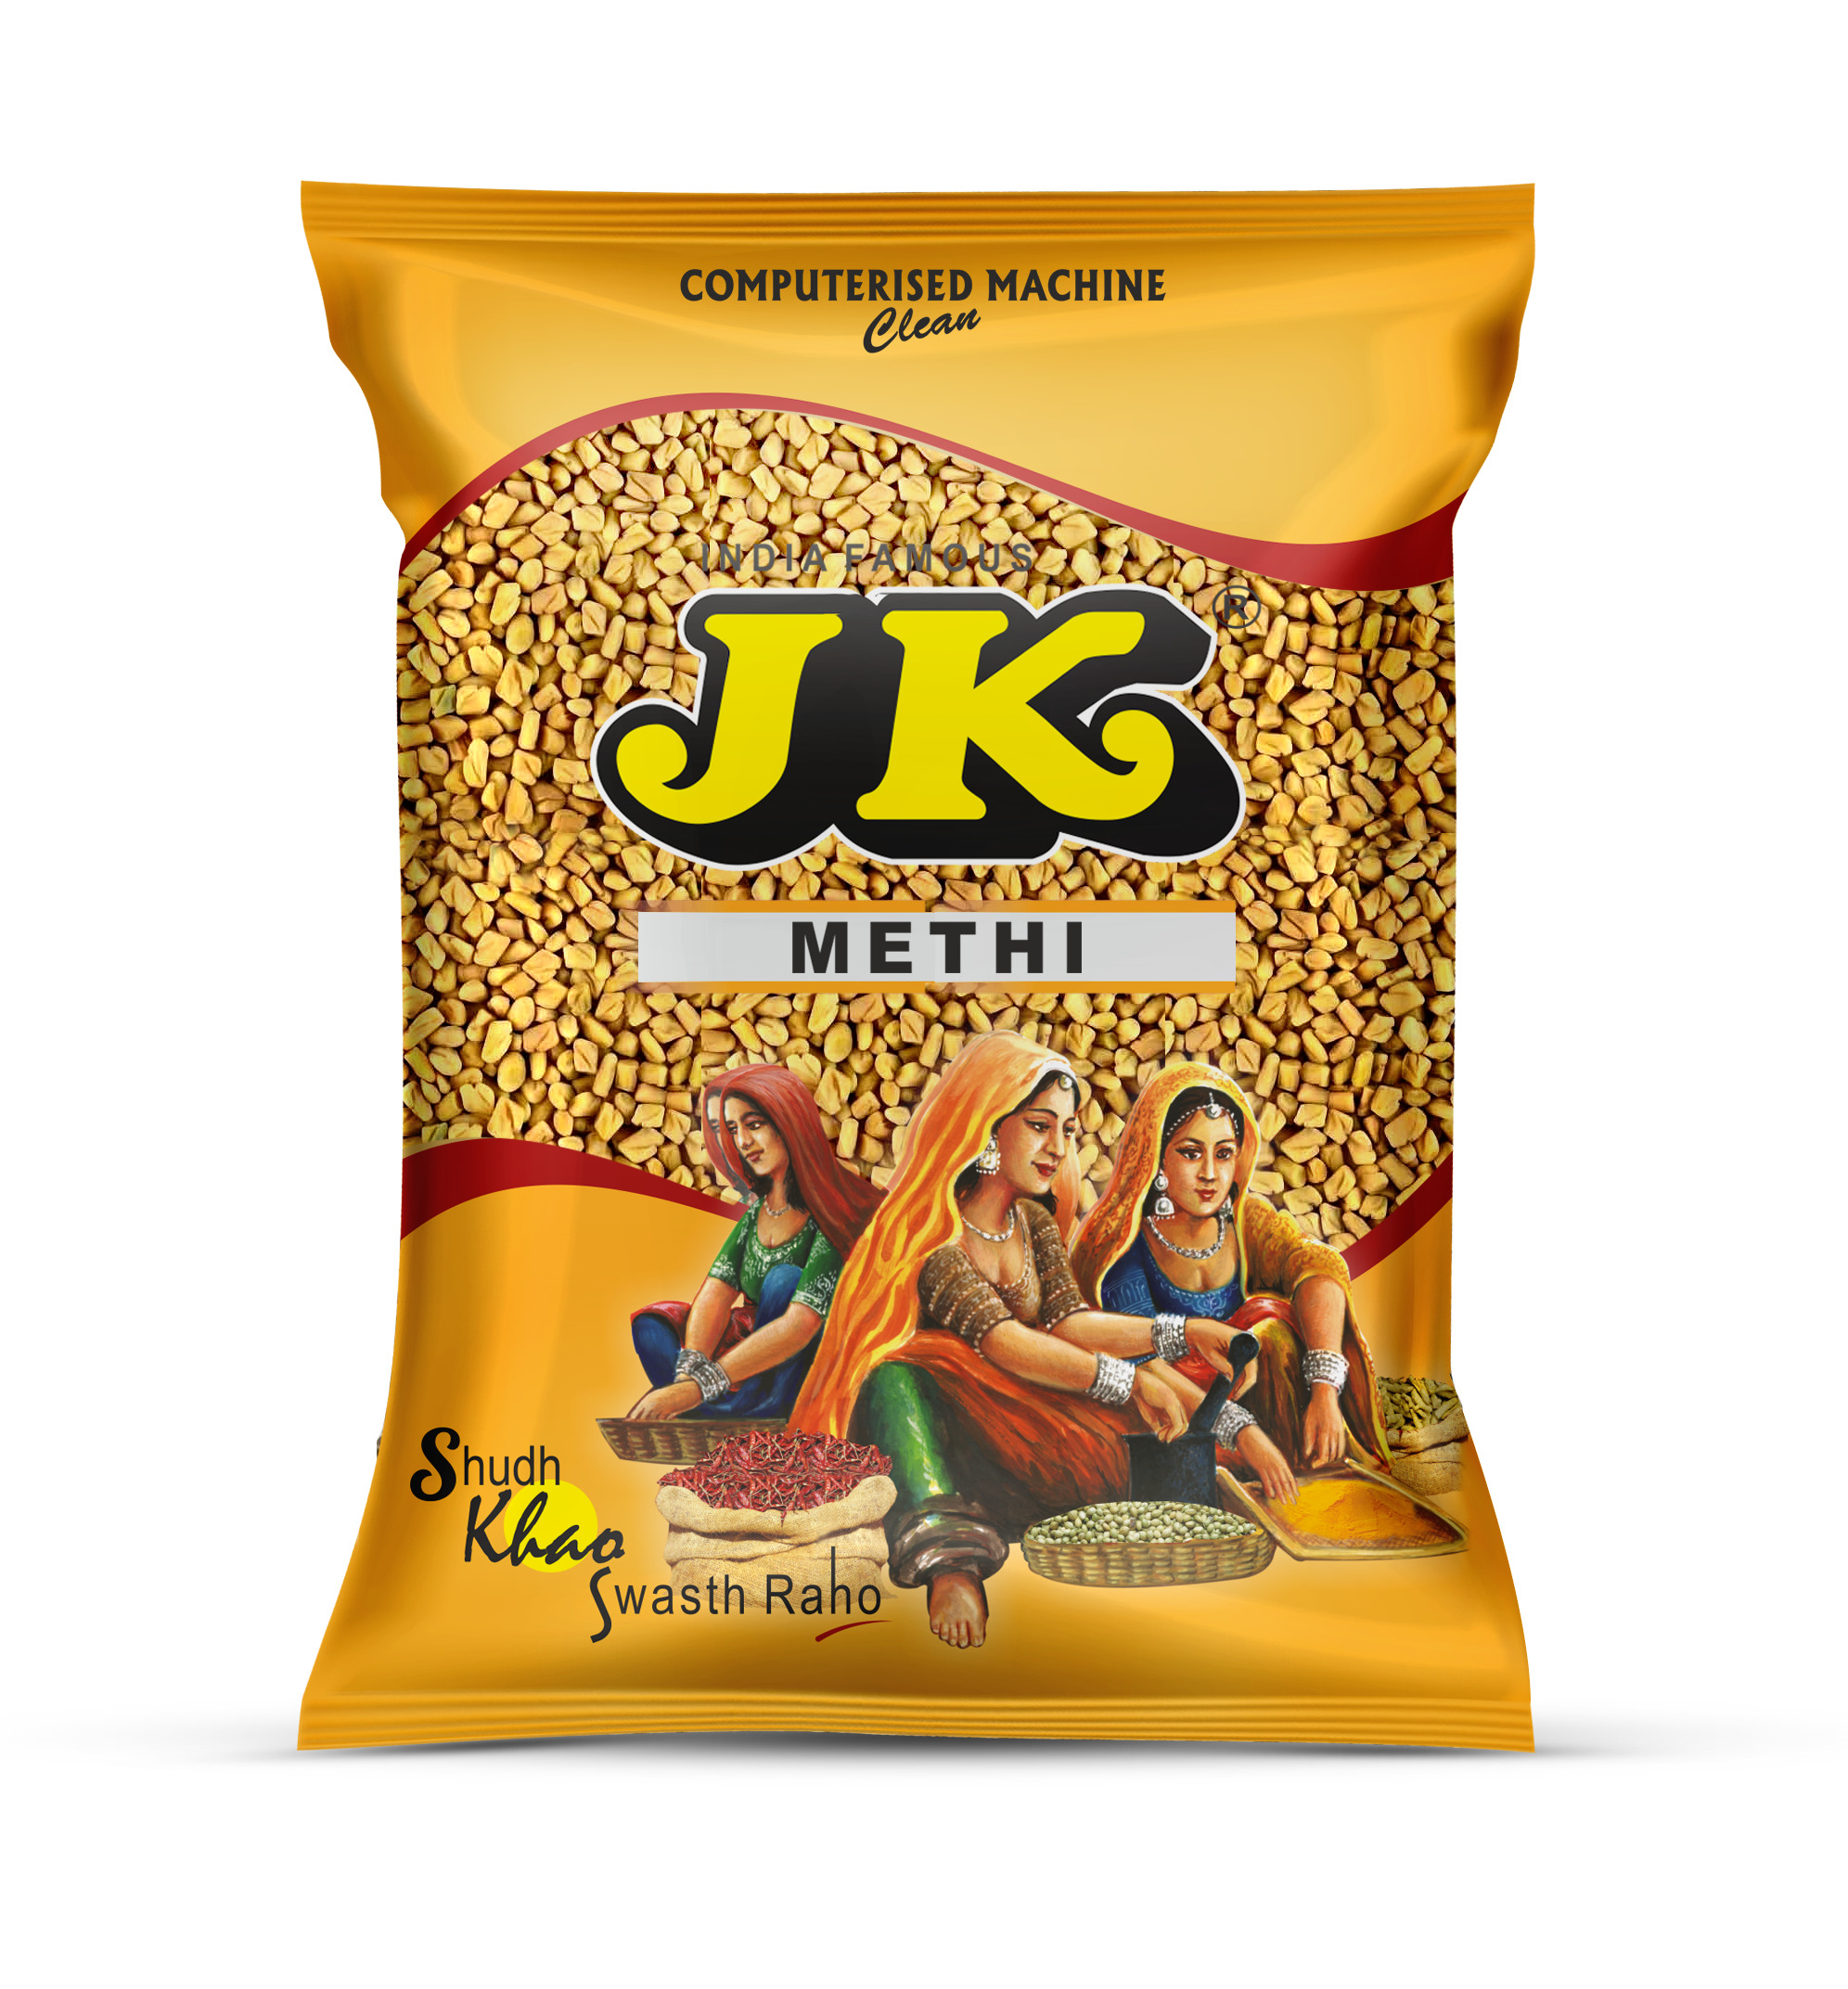 JK METHI WHOLE